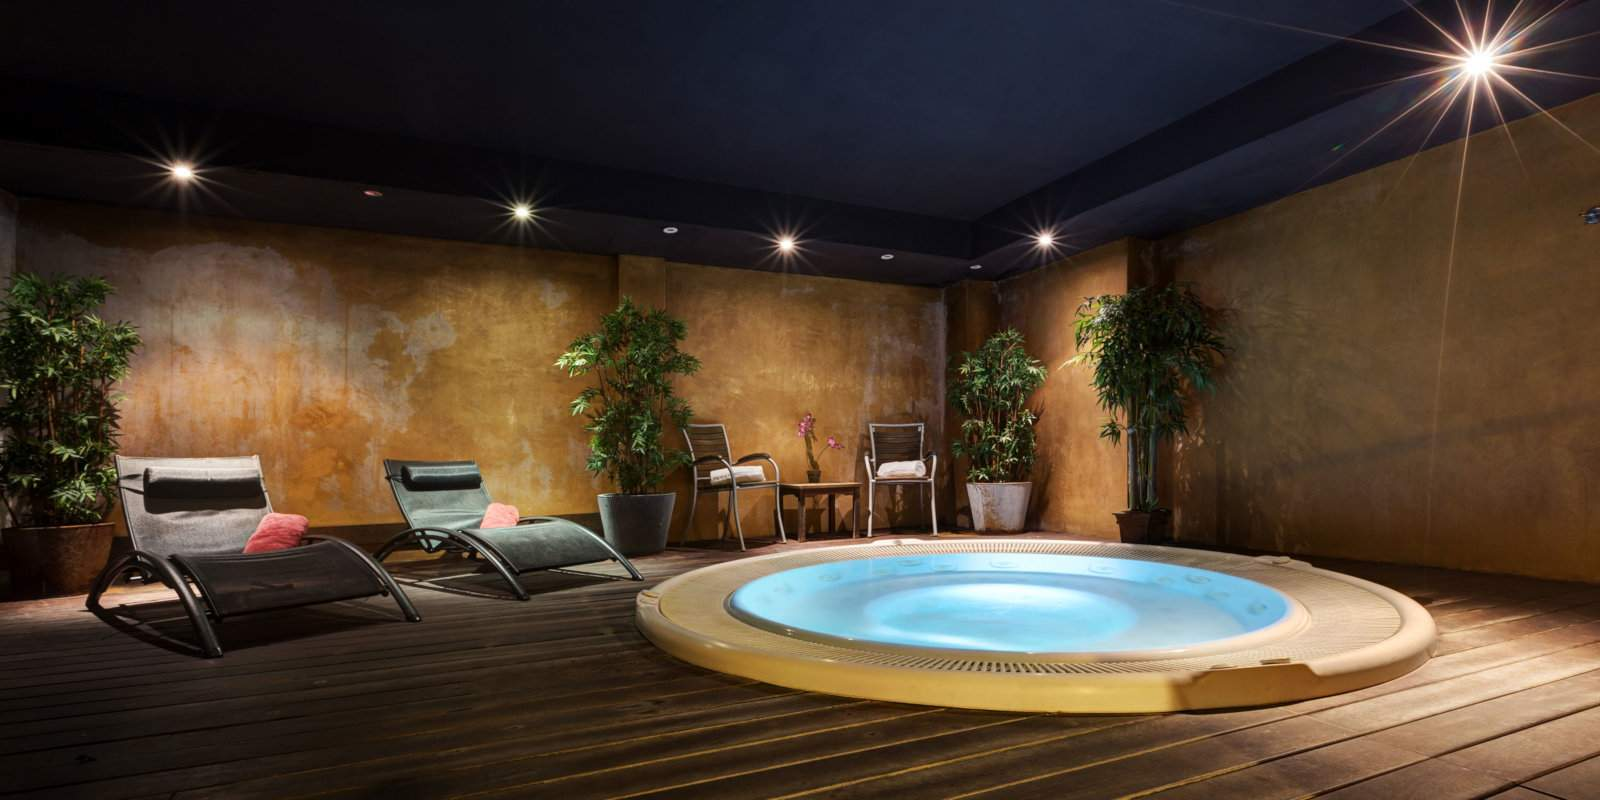 Gay hotels in Barcelona - Acevi Villarroeal is a lovely 4-star hotel in Barcelona with a rooftop pool, gym, restaurant and spa